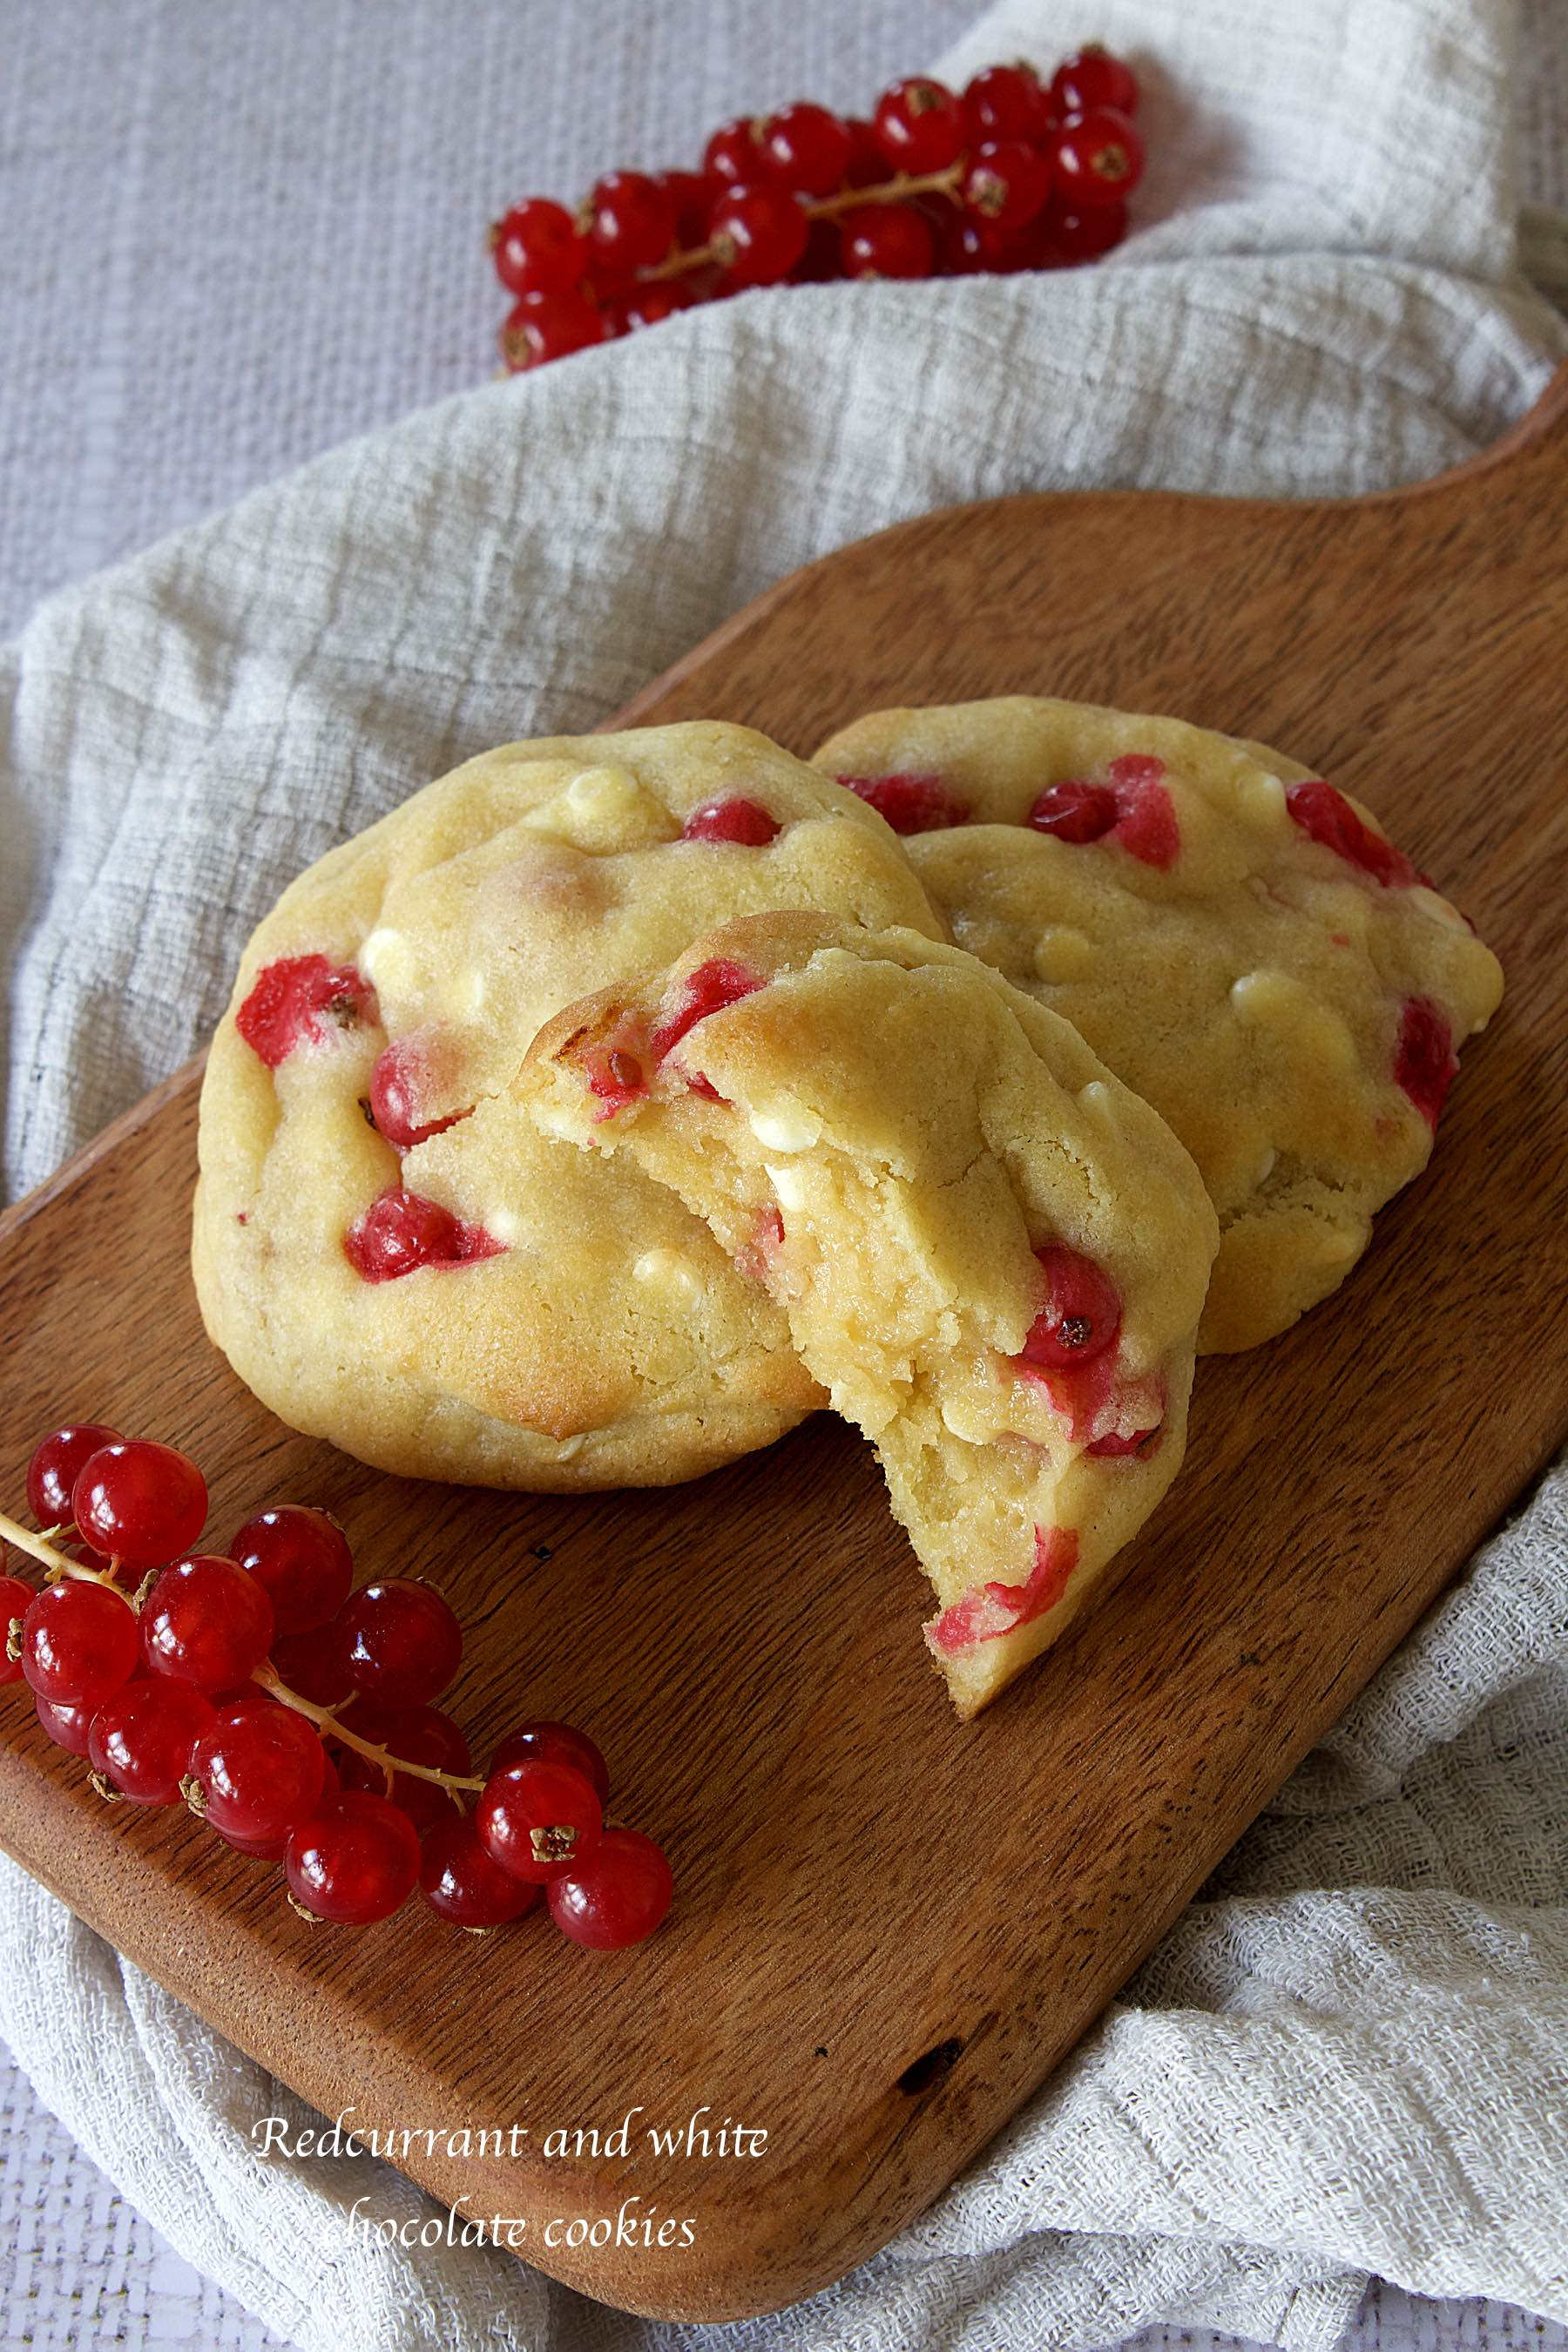 Redcurrant and white chocolate cookies